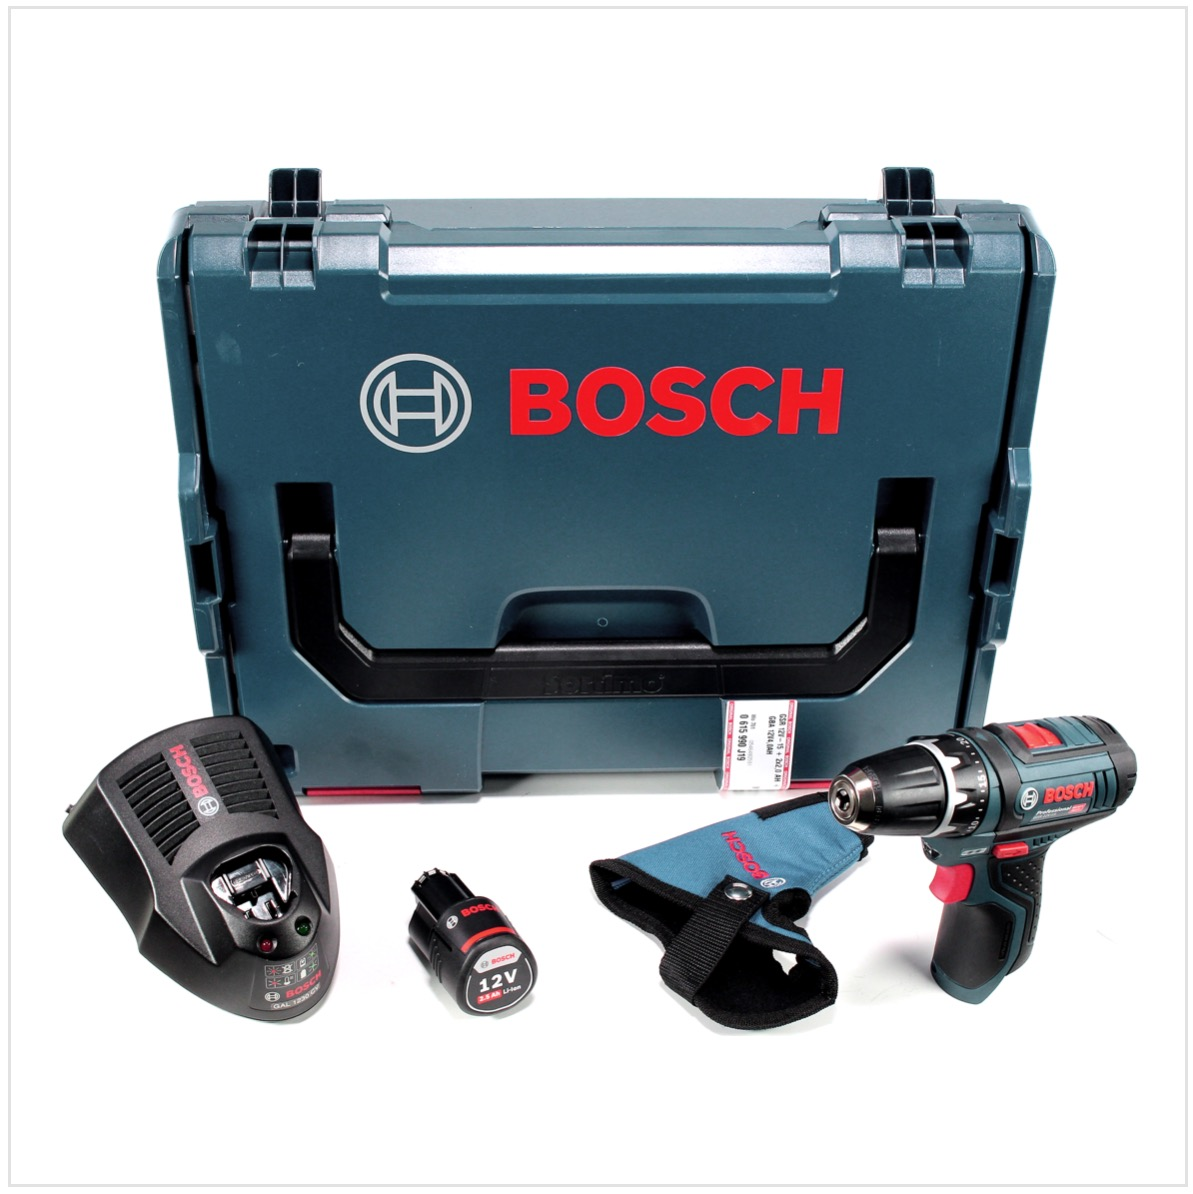 bosch gsr 12v 15 professional akku bohrschrauber 1x 2 5 ah akku 1x lader ebay. Black Bedroom Furniture Sets. Home Design Ideas